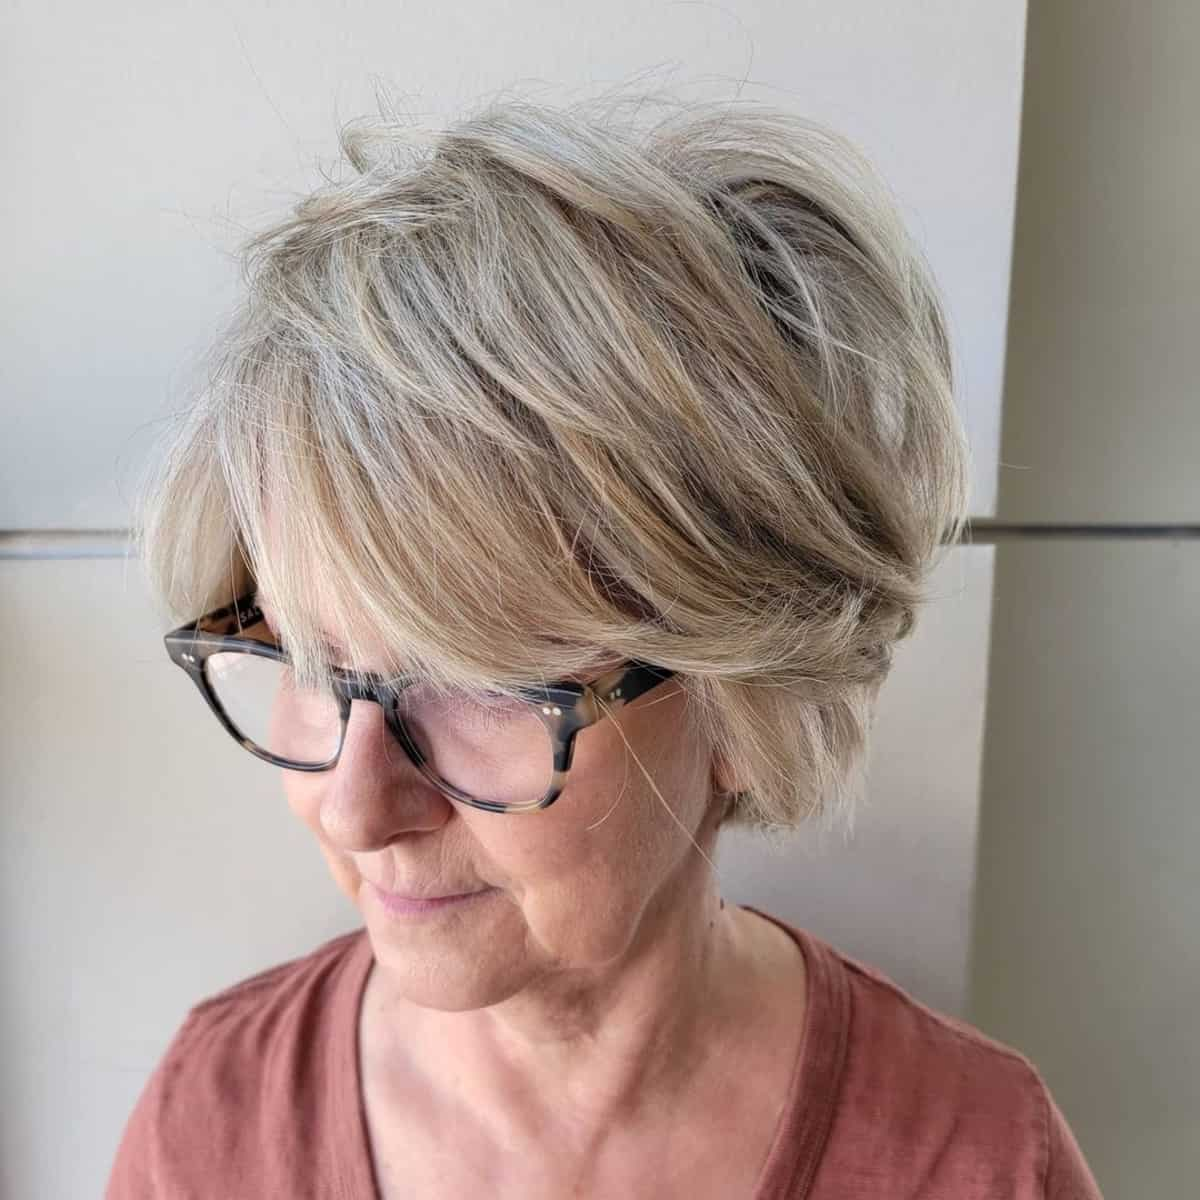 Tousled razor cut bob with glasses for ladies in their 60s